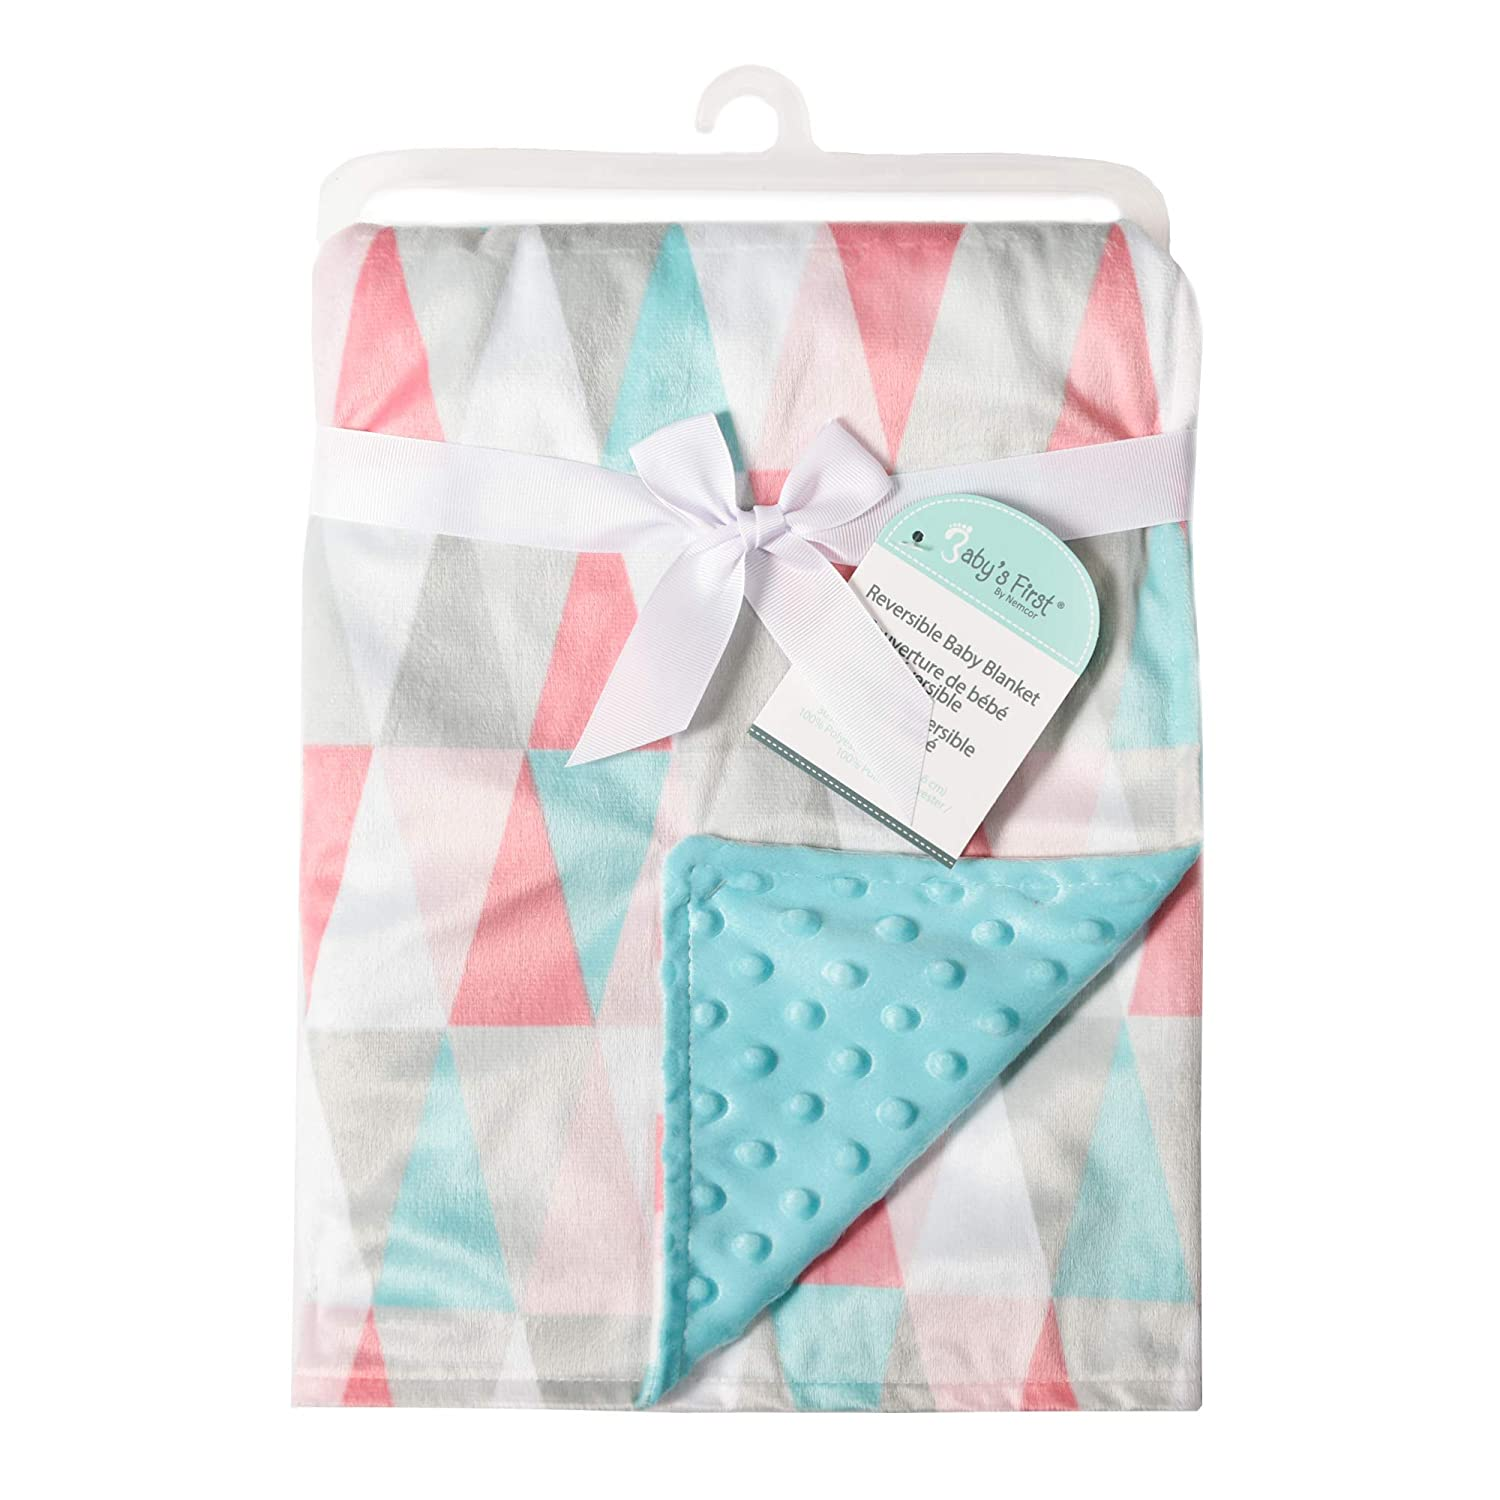 Decorative Triangles Babys First by Nemcor 35608-311-BLKT-GTRI Girl Blanket